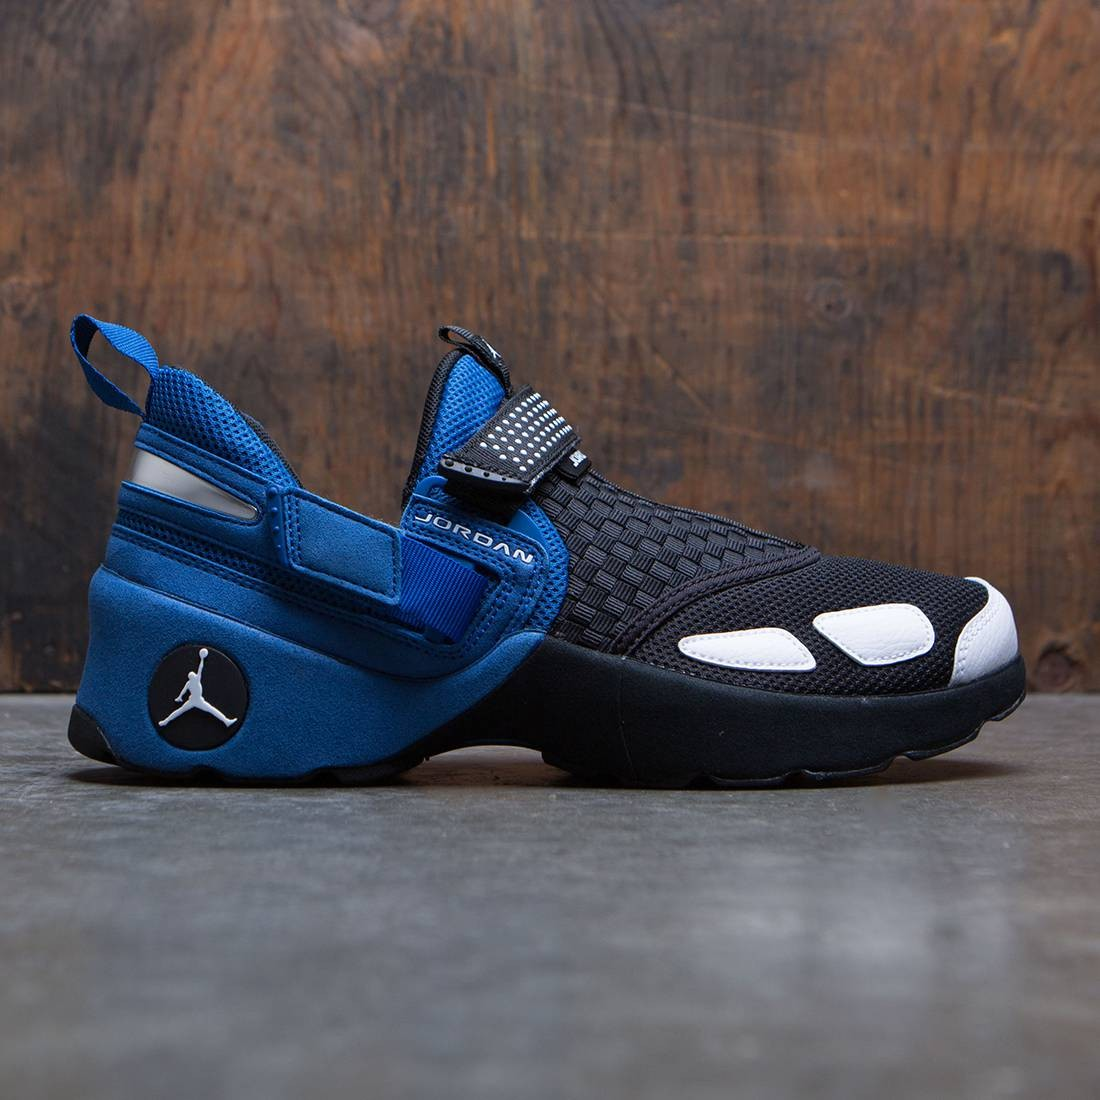 0301c3ee94d182 jordan men jordan trunner lx og black white team royal